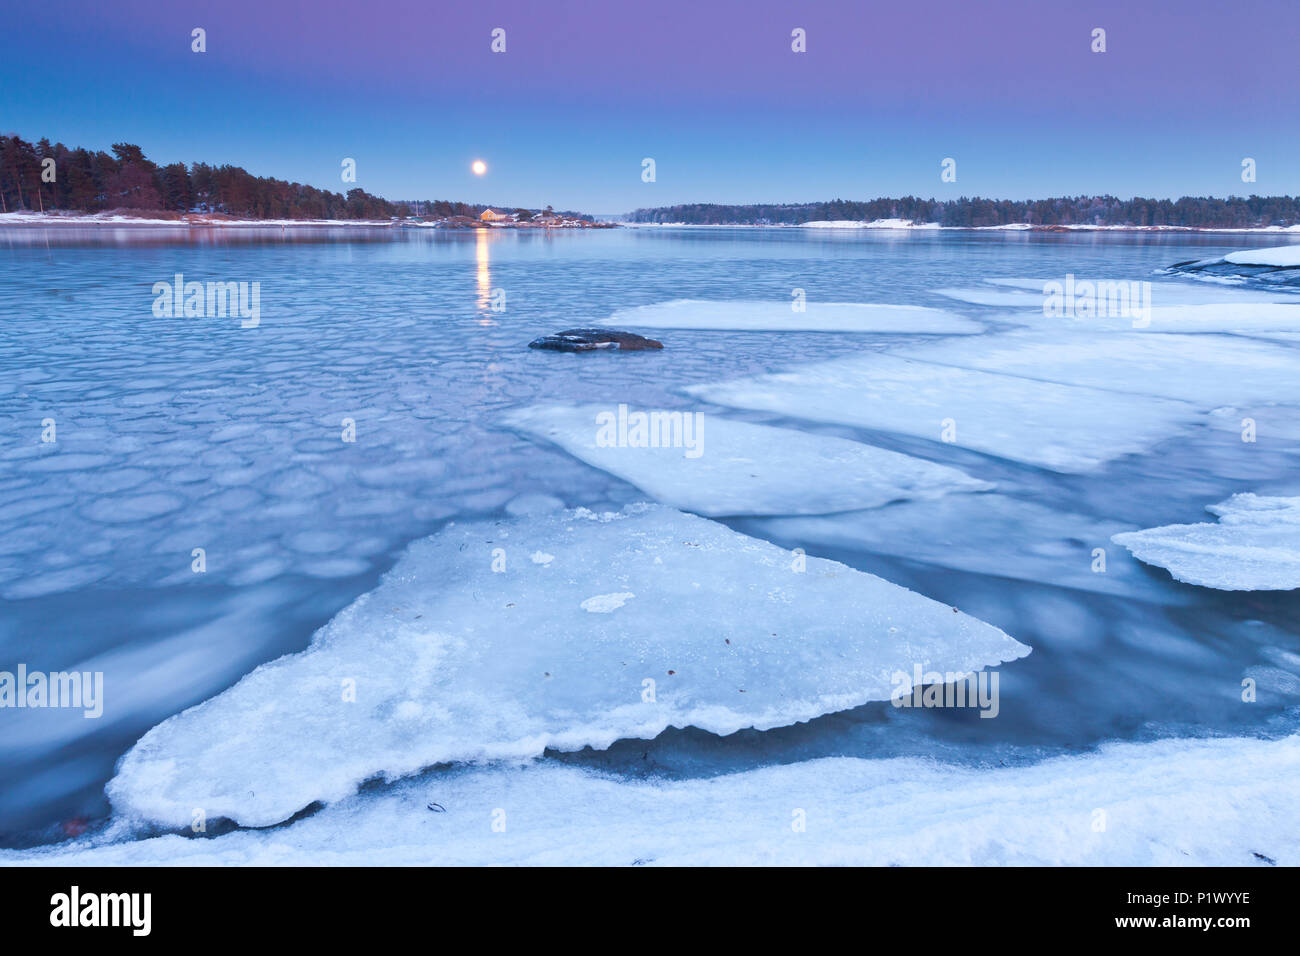 Rising moon on a cold winter evening by the Oslofjord, at Oven in Råde, Østfold Norway. Stock Photo